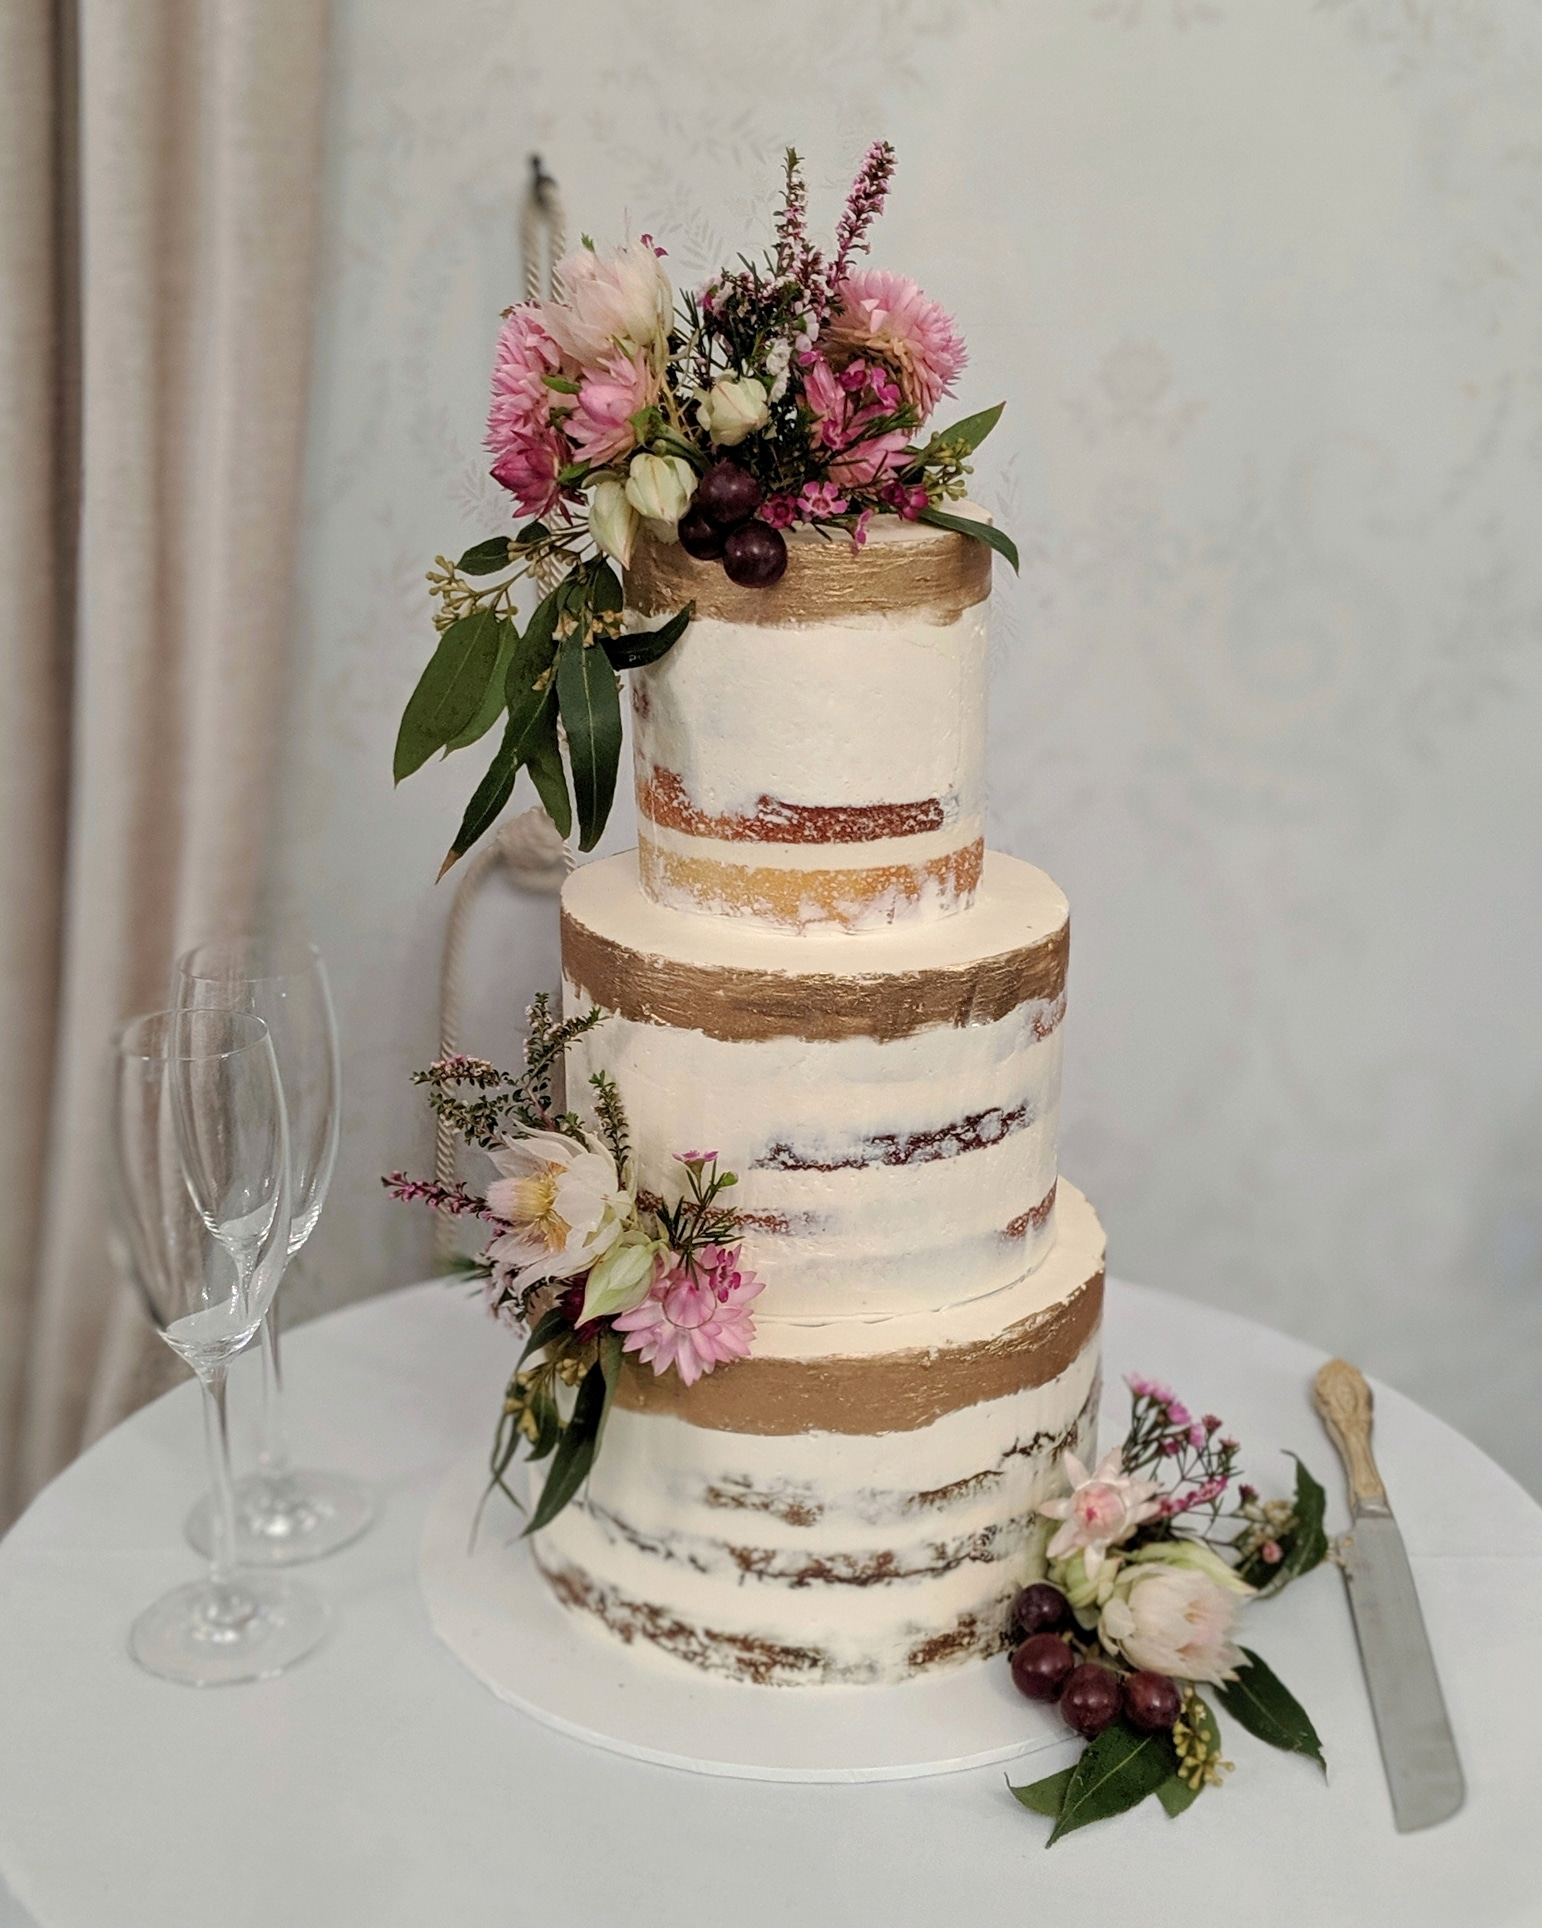 3 tiered semi naked wedding cake with gold detailing and native flowers